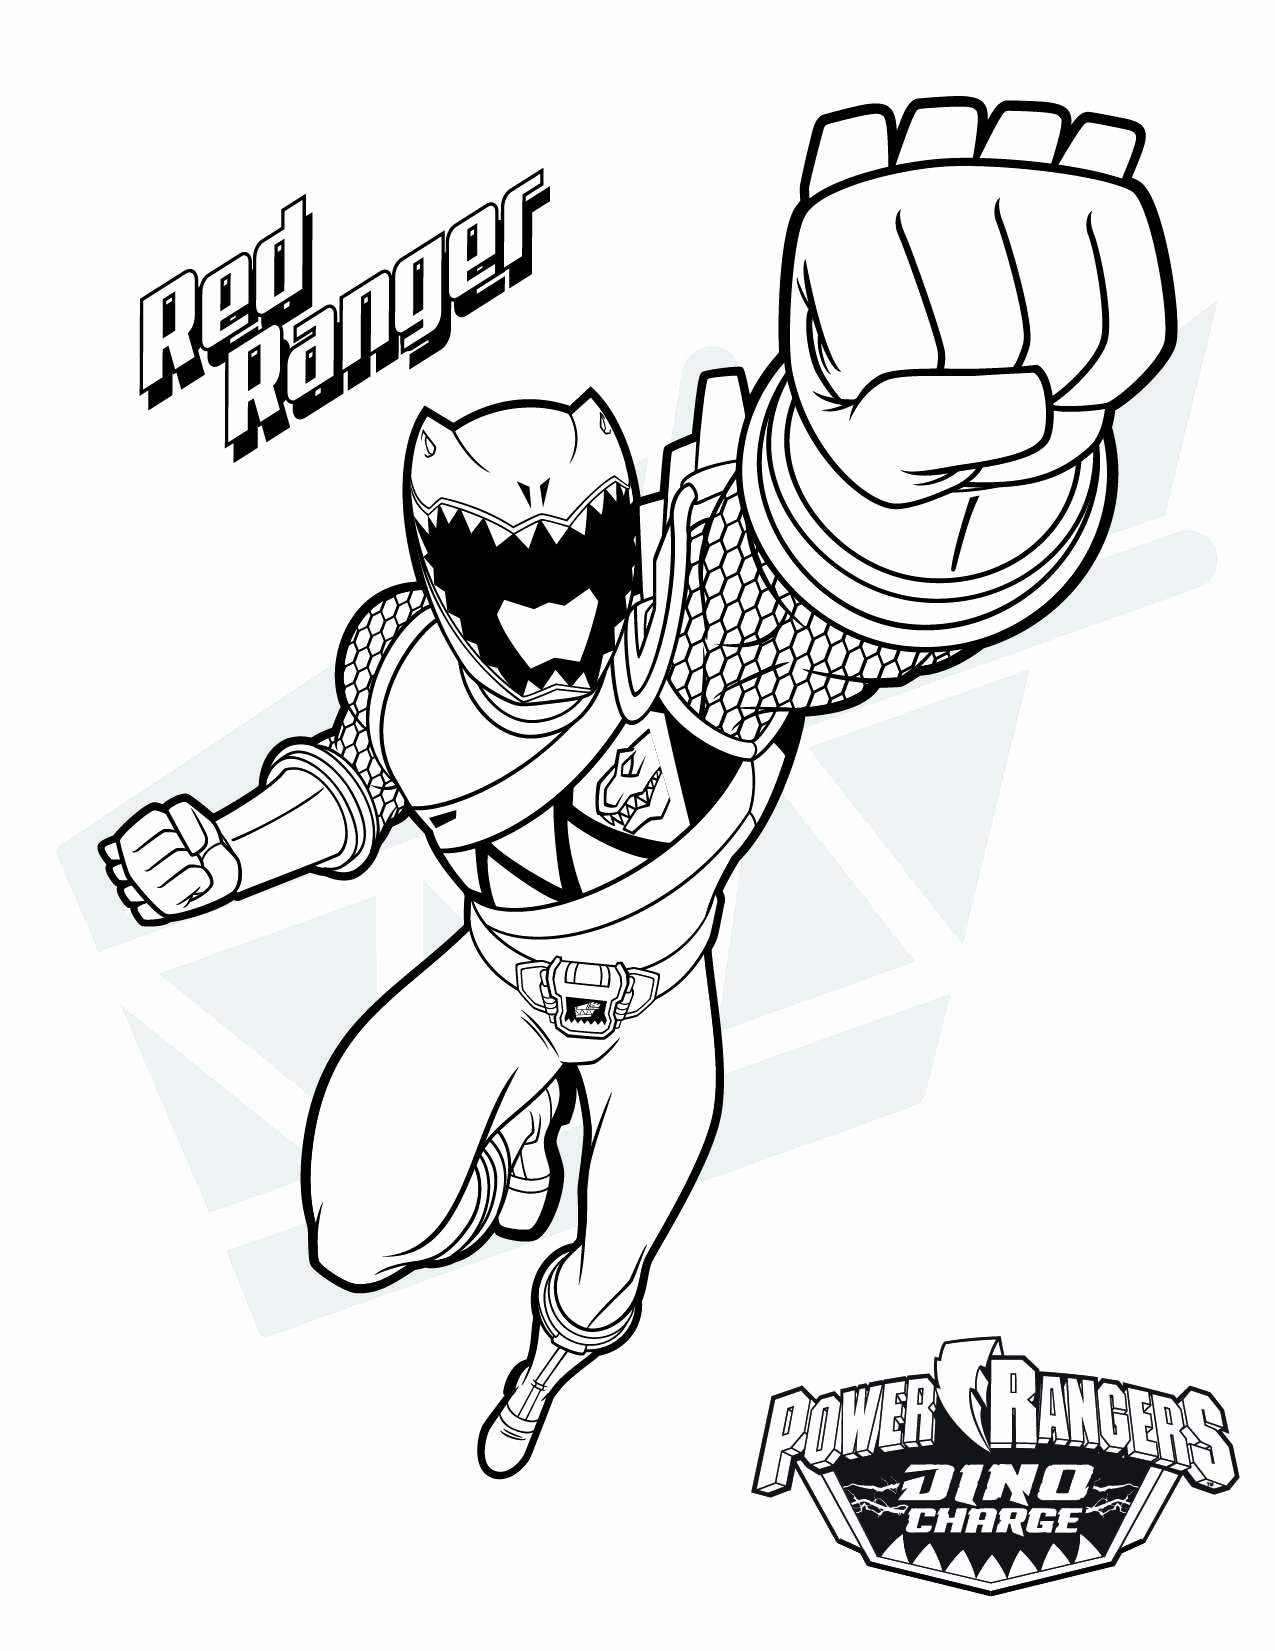 coloring pages : Red Ranger Coloring Page Free Printable Pages For Kids  Spdwer Rangers Pictures Games All Fabulous Power Ranger Picture To Color  Photo Ideas ~ mommaonamissioninc